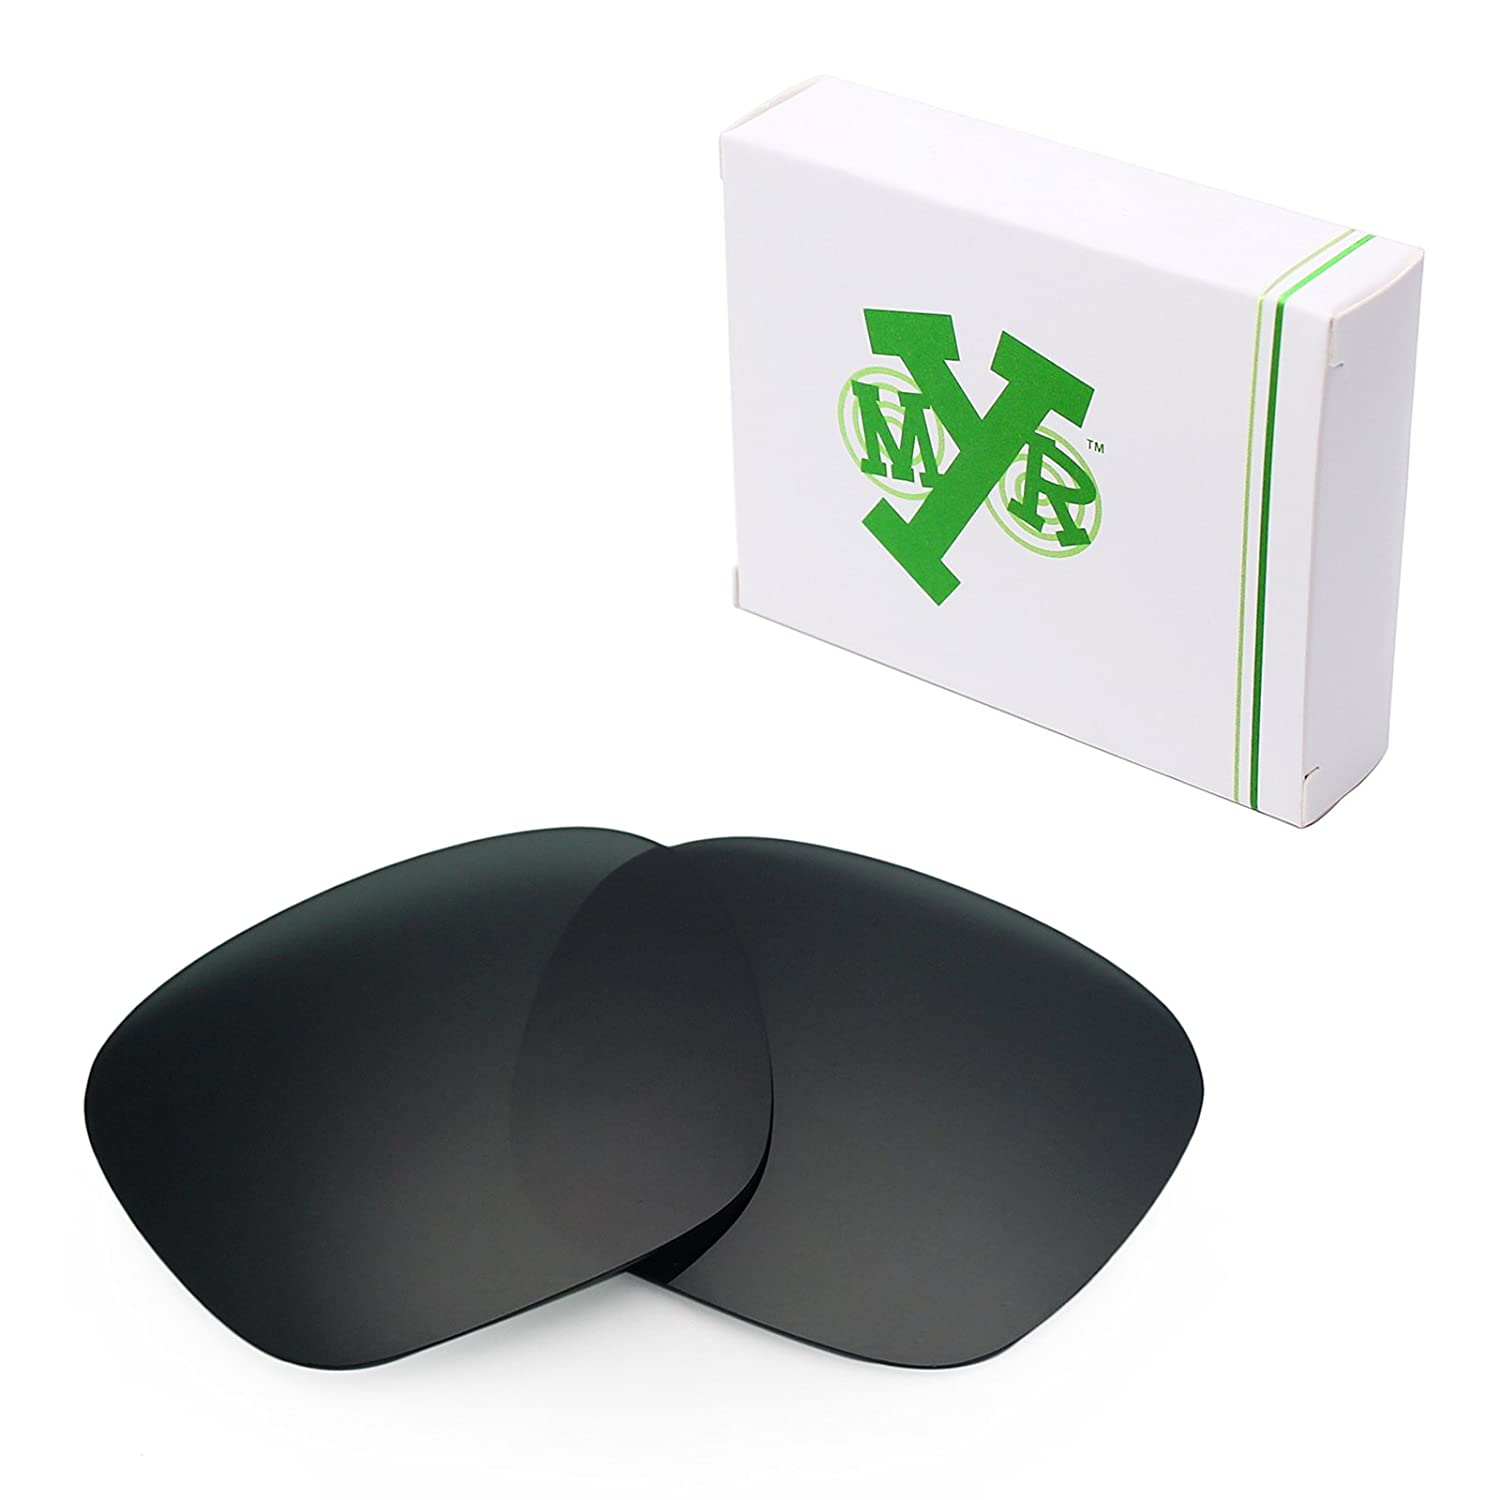 Mryok Replacement Lenses for Spy Optic Discord - Options MryLens CSO01DEGP